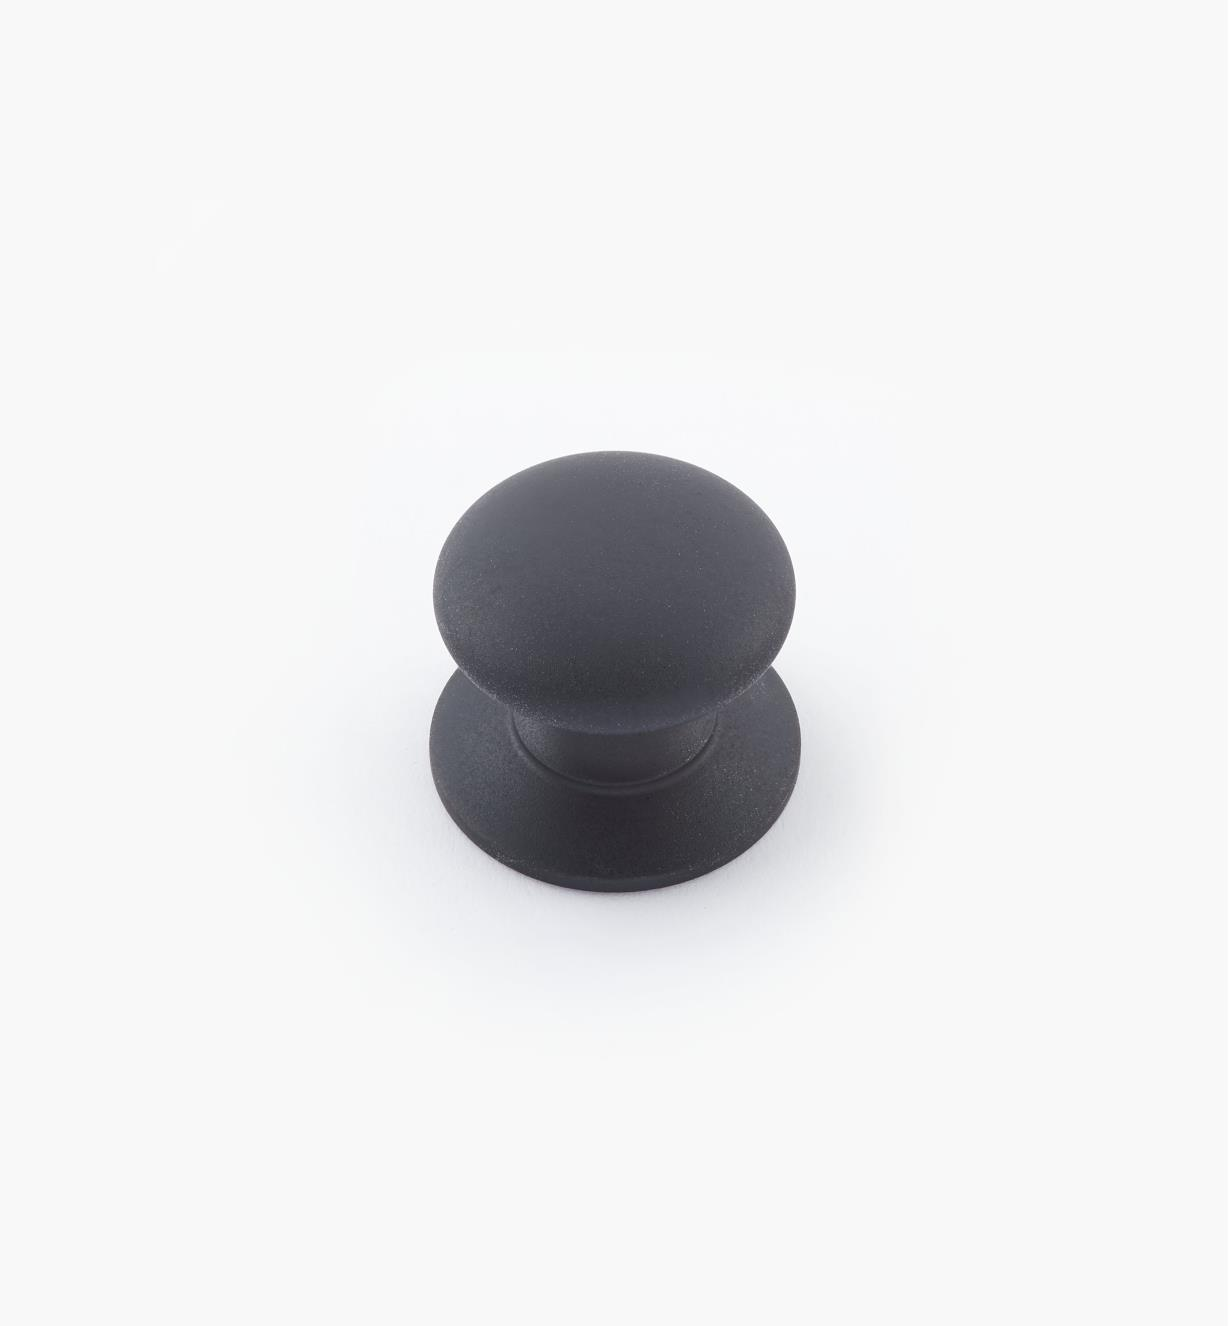 "02W2737 - 3/4"" × 5/8"" Round Brass Knob, Oil-Rubbed Bronze"